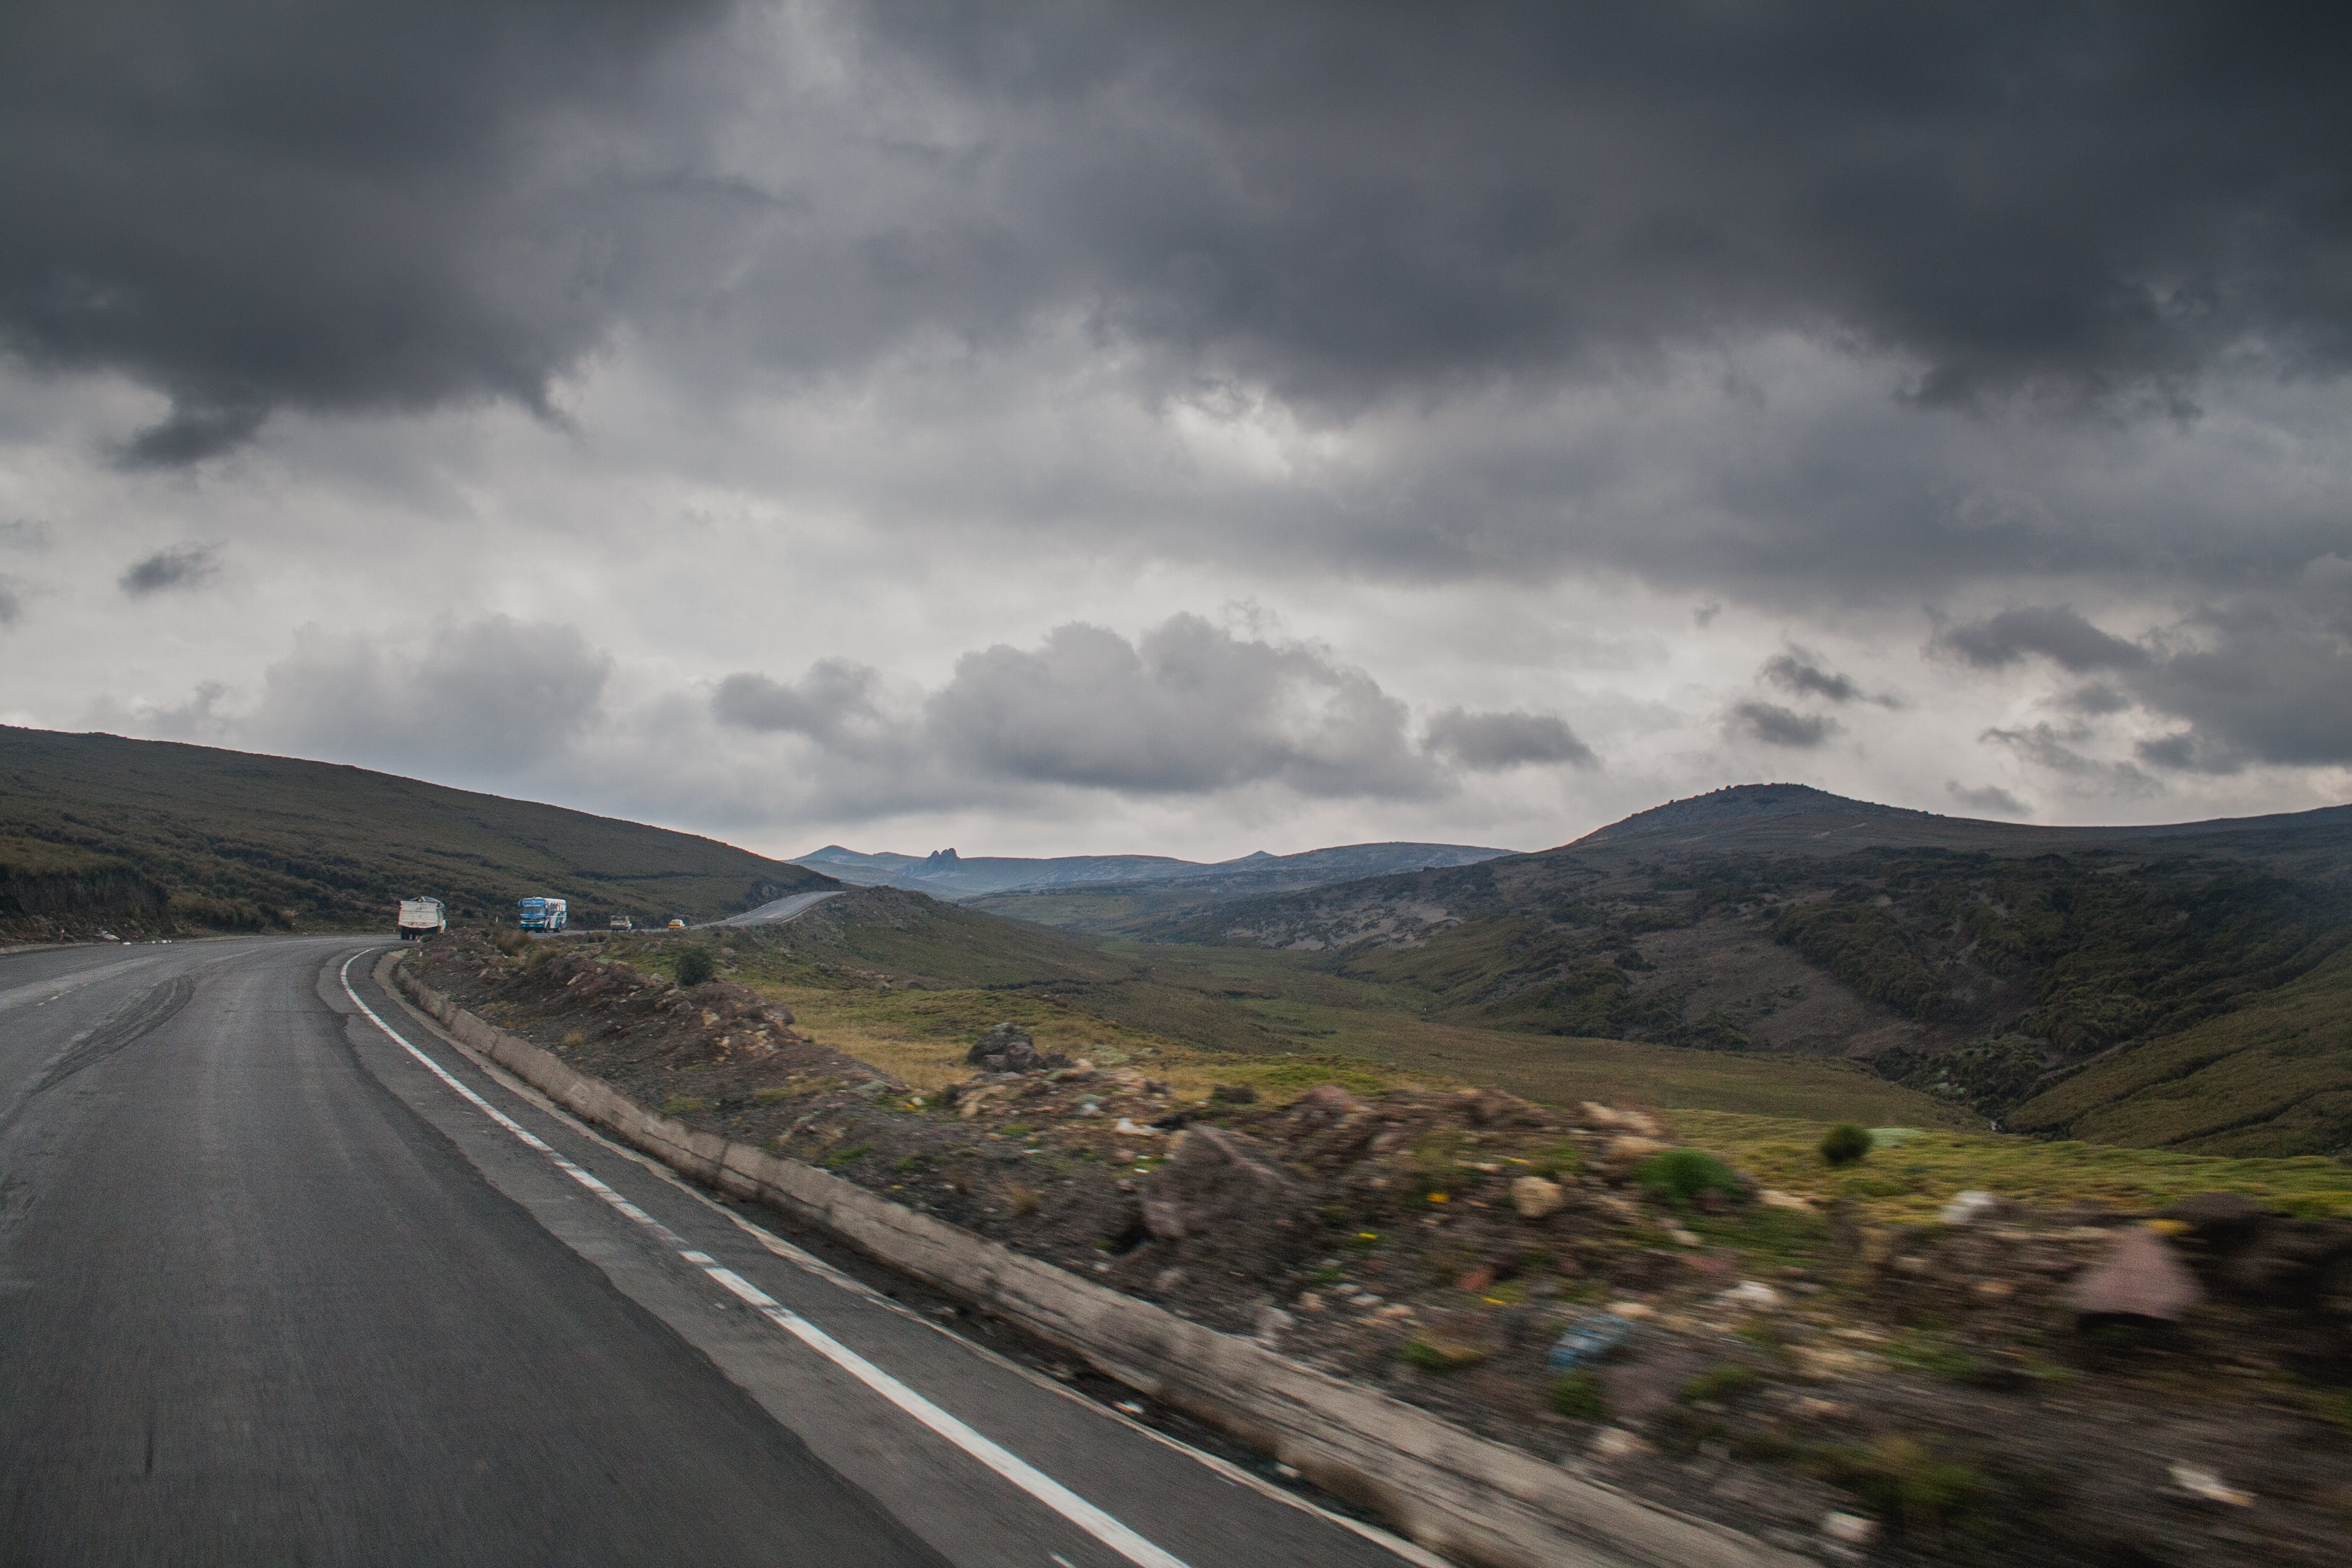 Road Near Brown Stone during Cloudy